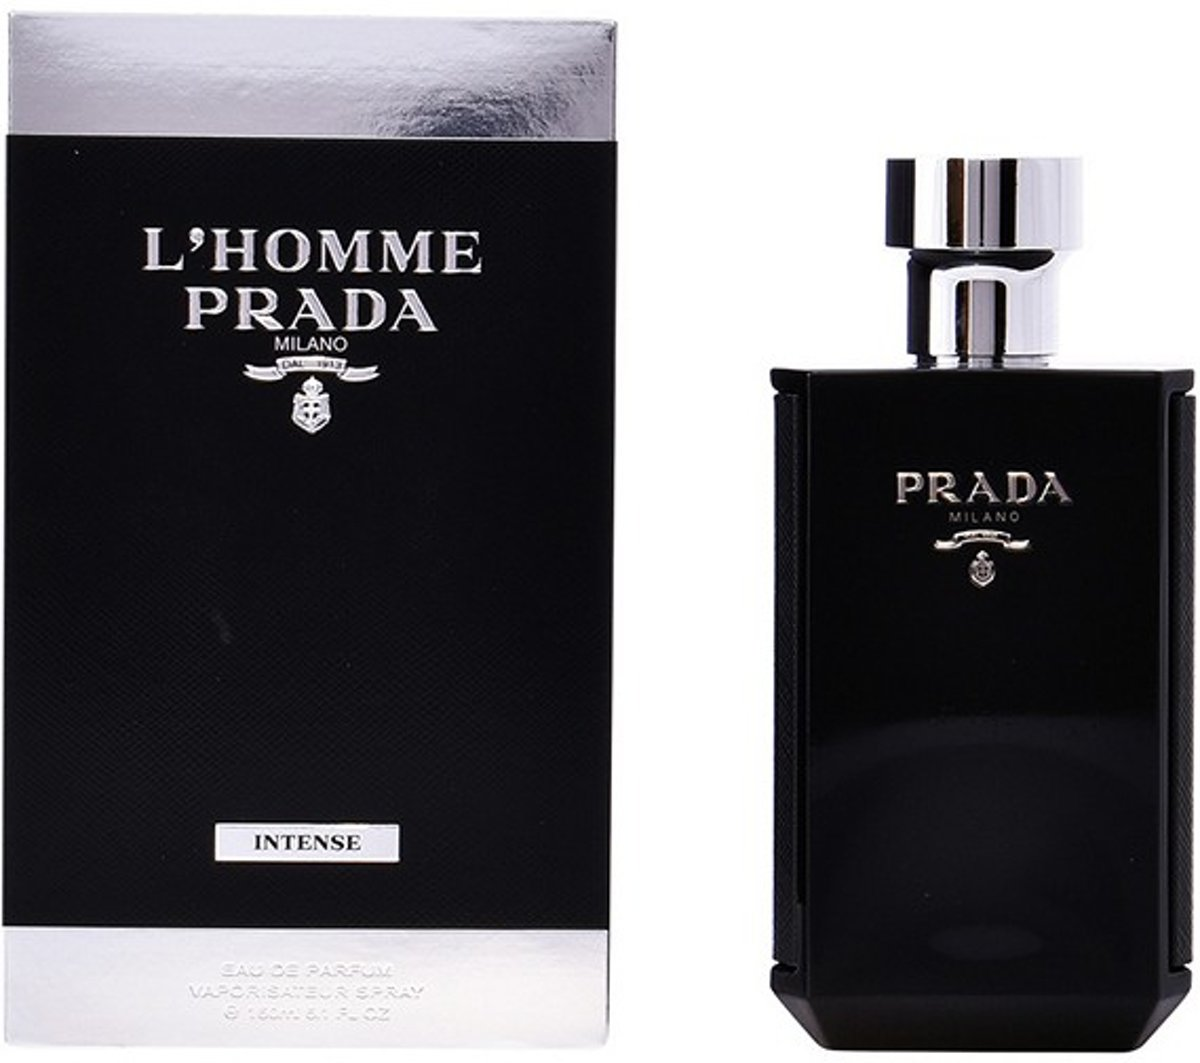 Herenparfum Lhomme Prada Intenso Prada EDP 50 ml